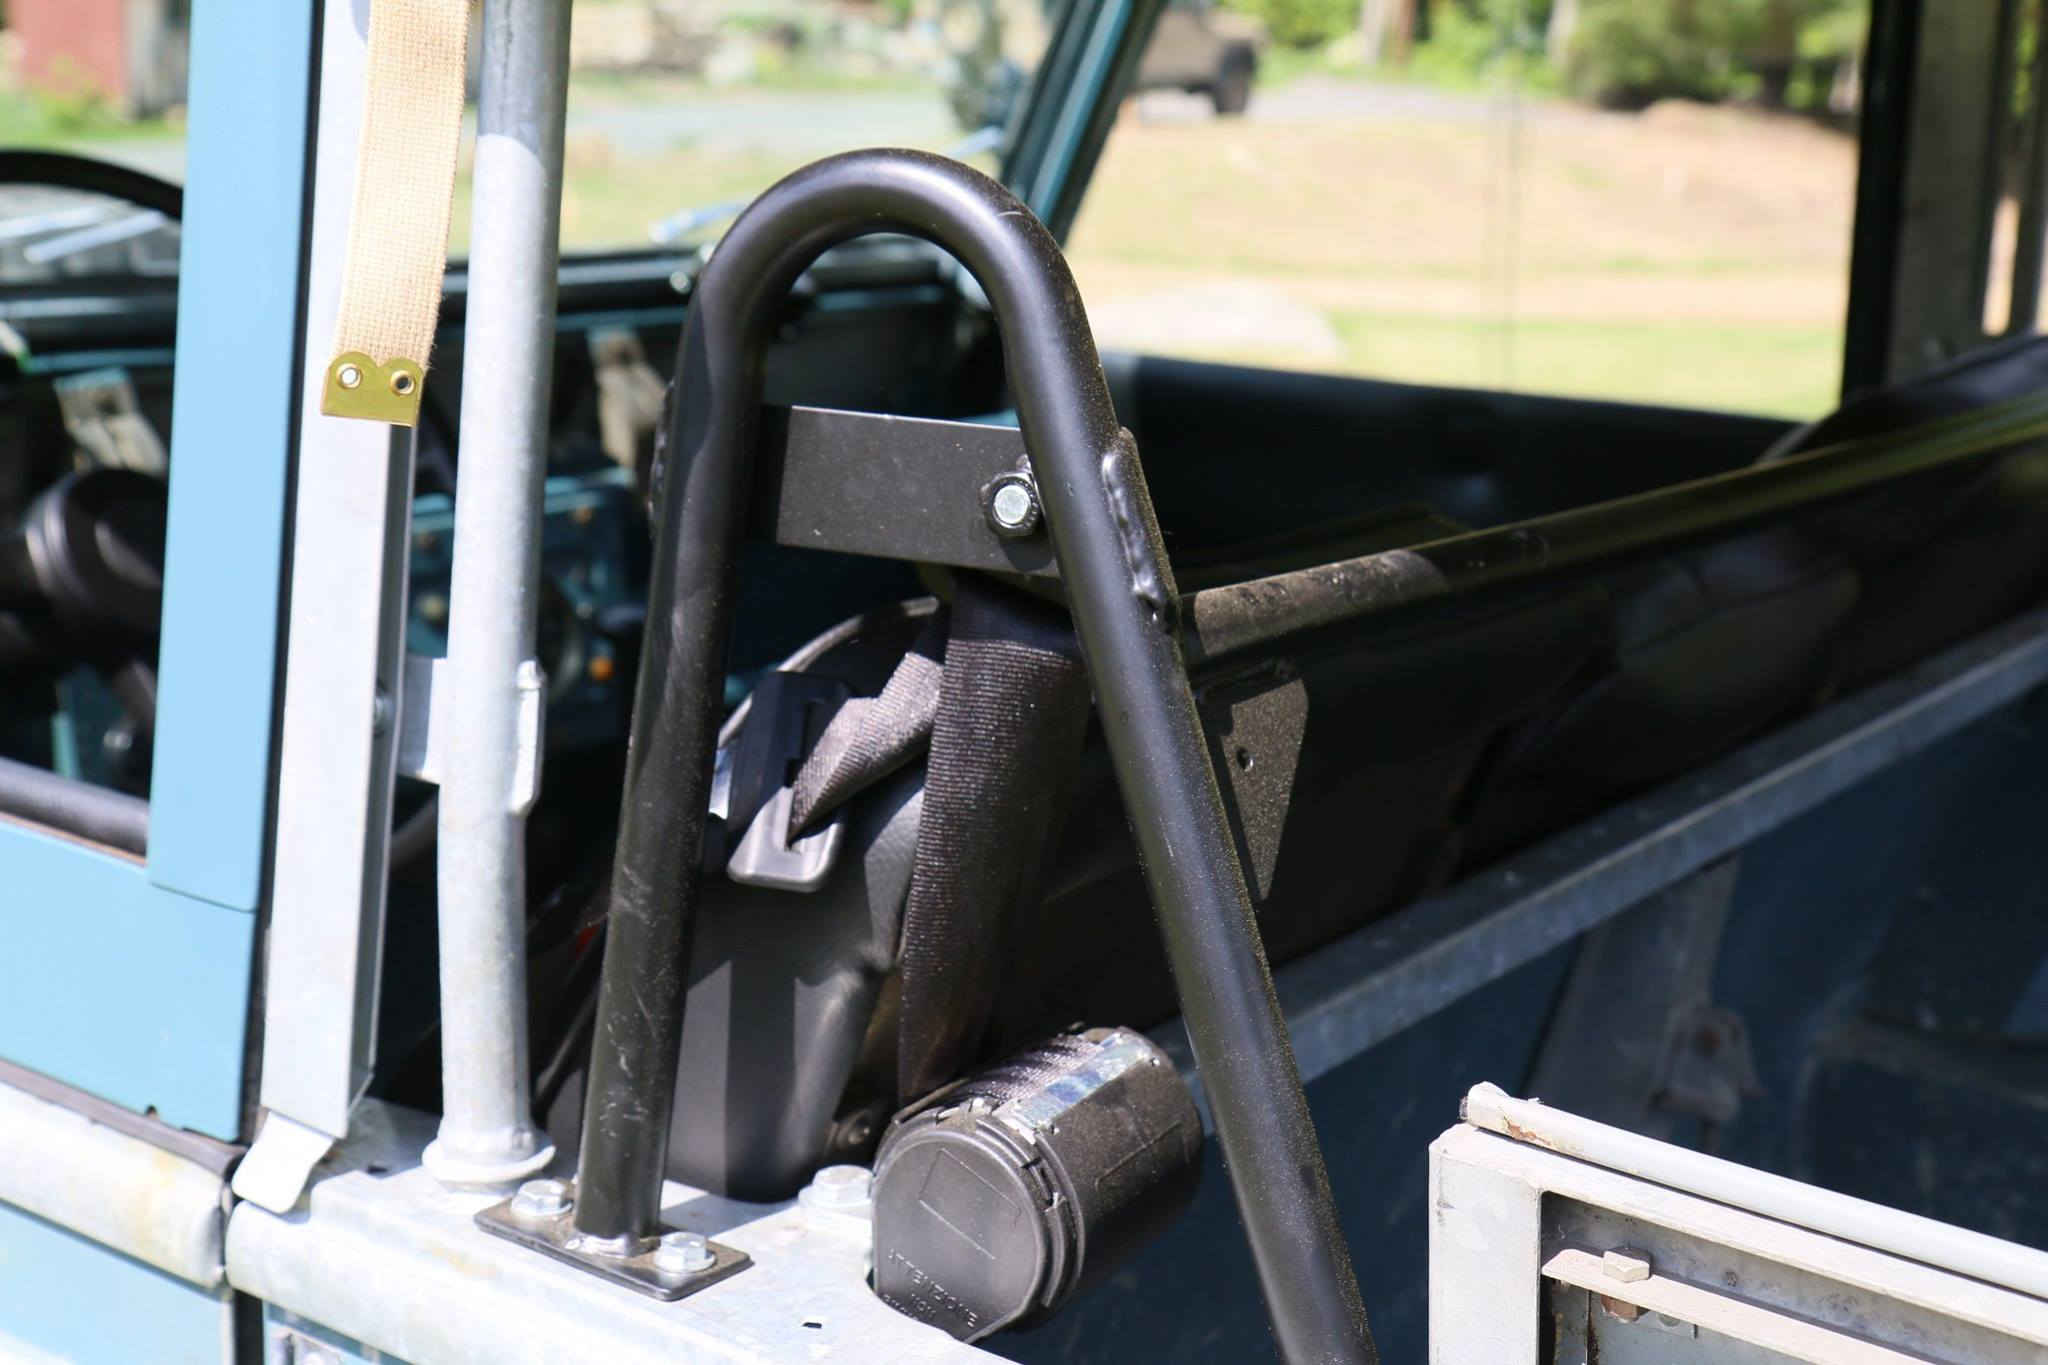 A seat belt bar is installed so that Defender shoulder harness seat belts can be used.